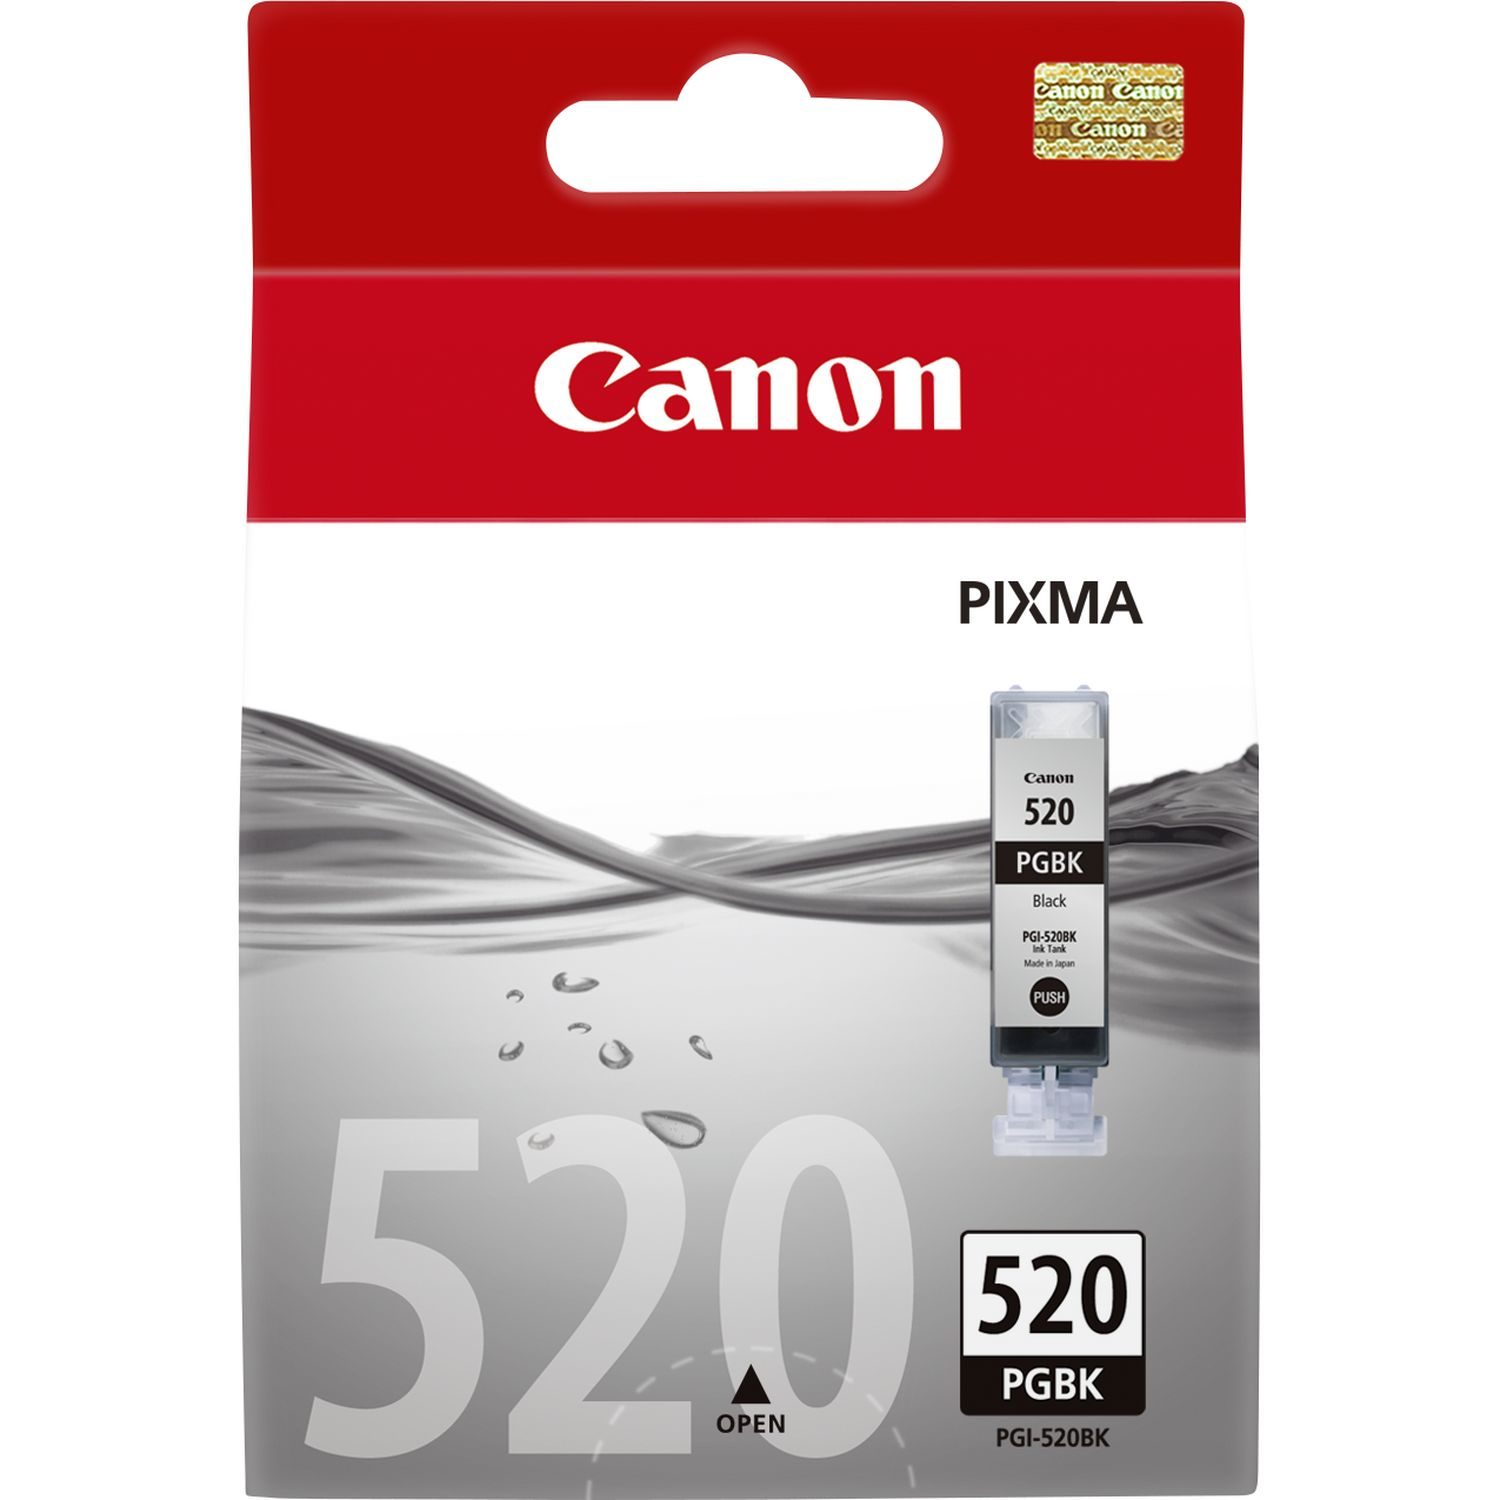 2932b001 canon Canon Pgi-520bk Black Ink Cartridge - AD01